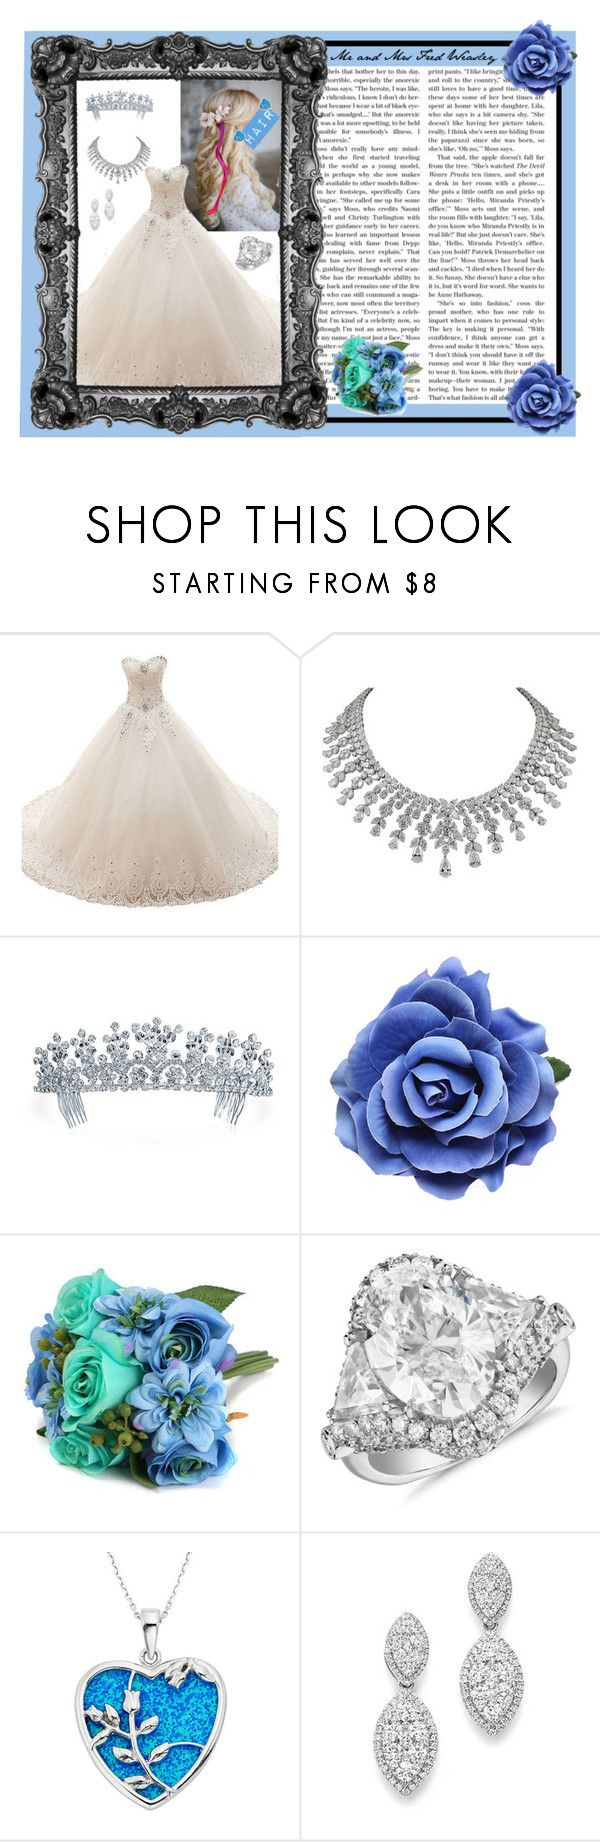 """Daphne Nightshade - Wedding - (HP Fanfic)"" by gryffindormermaid ❤ liked on Polyvore featuring Bling Jewelry, Blue Nile, Bloomingdale's and daphnenightshade"